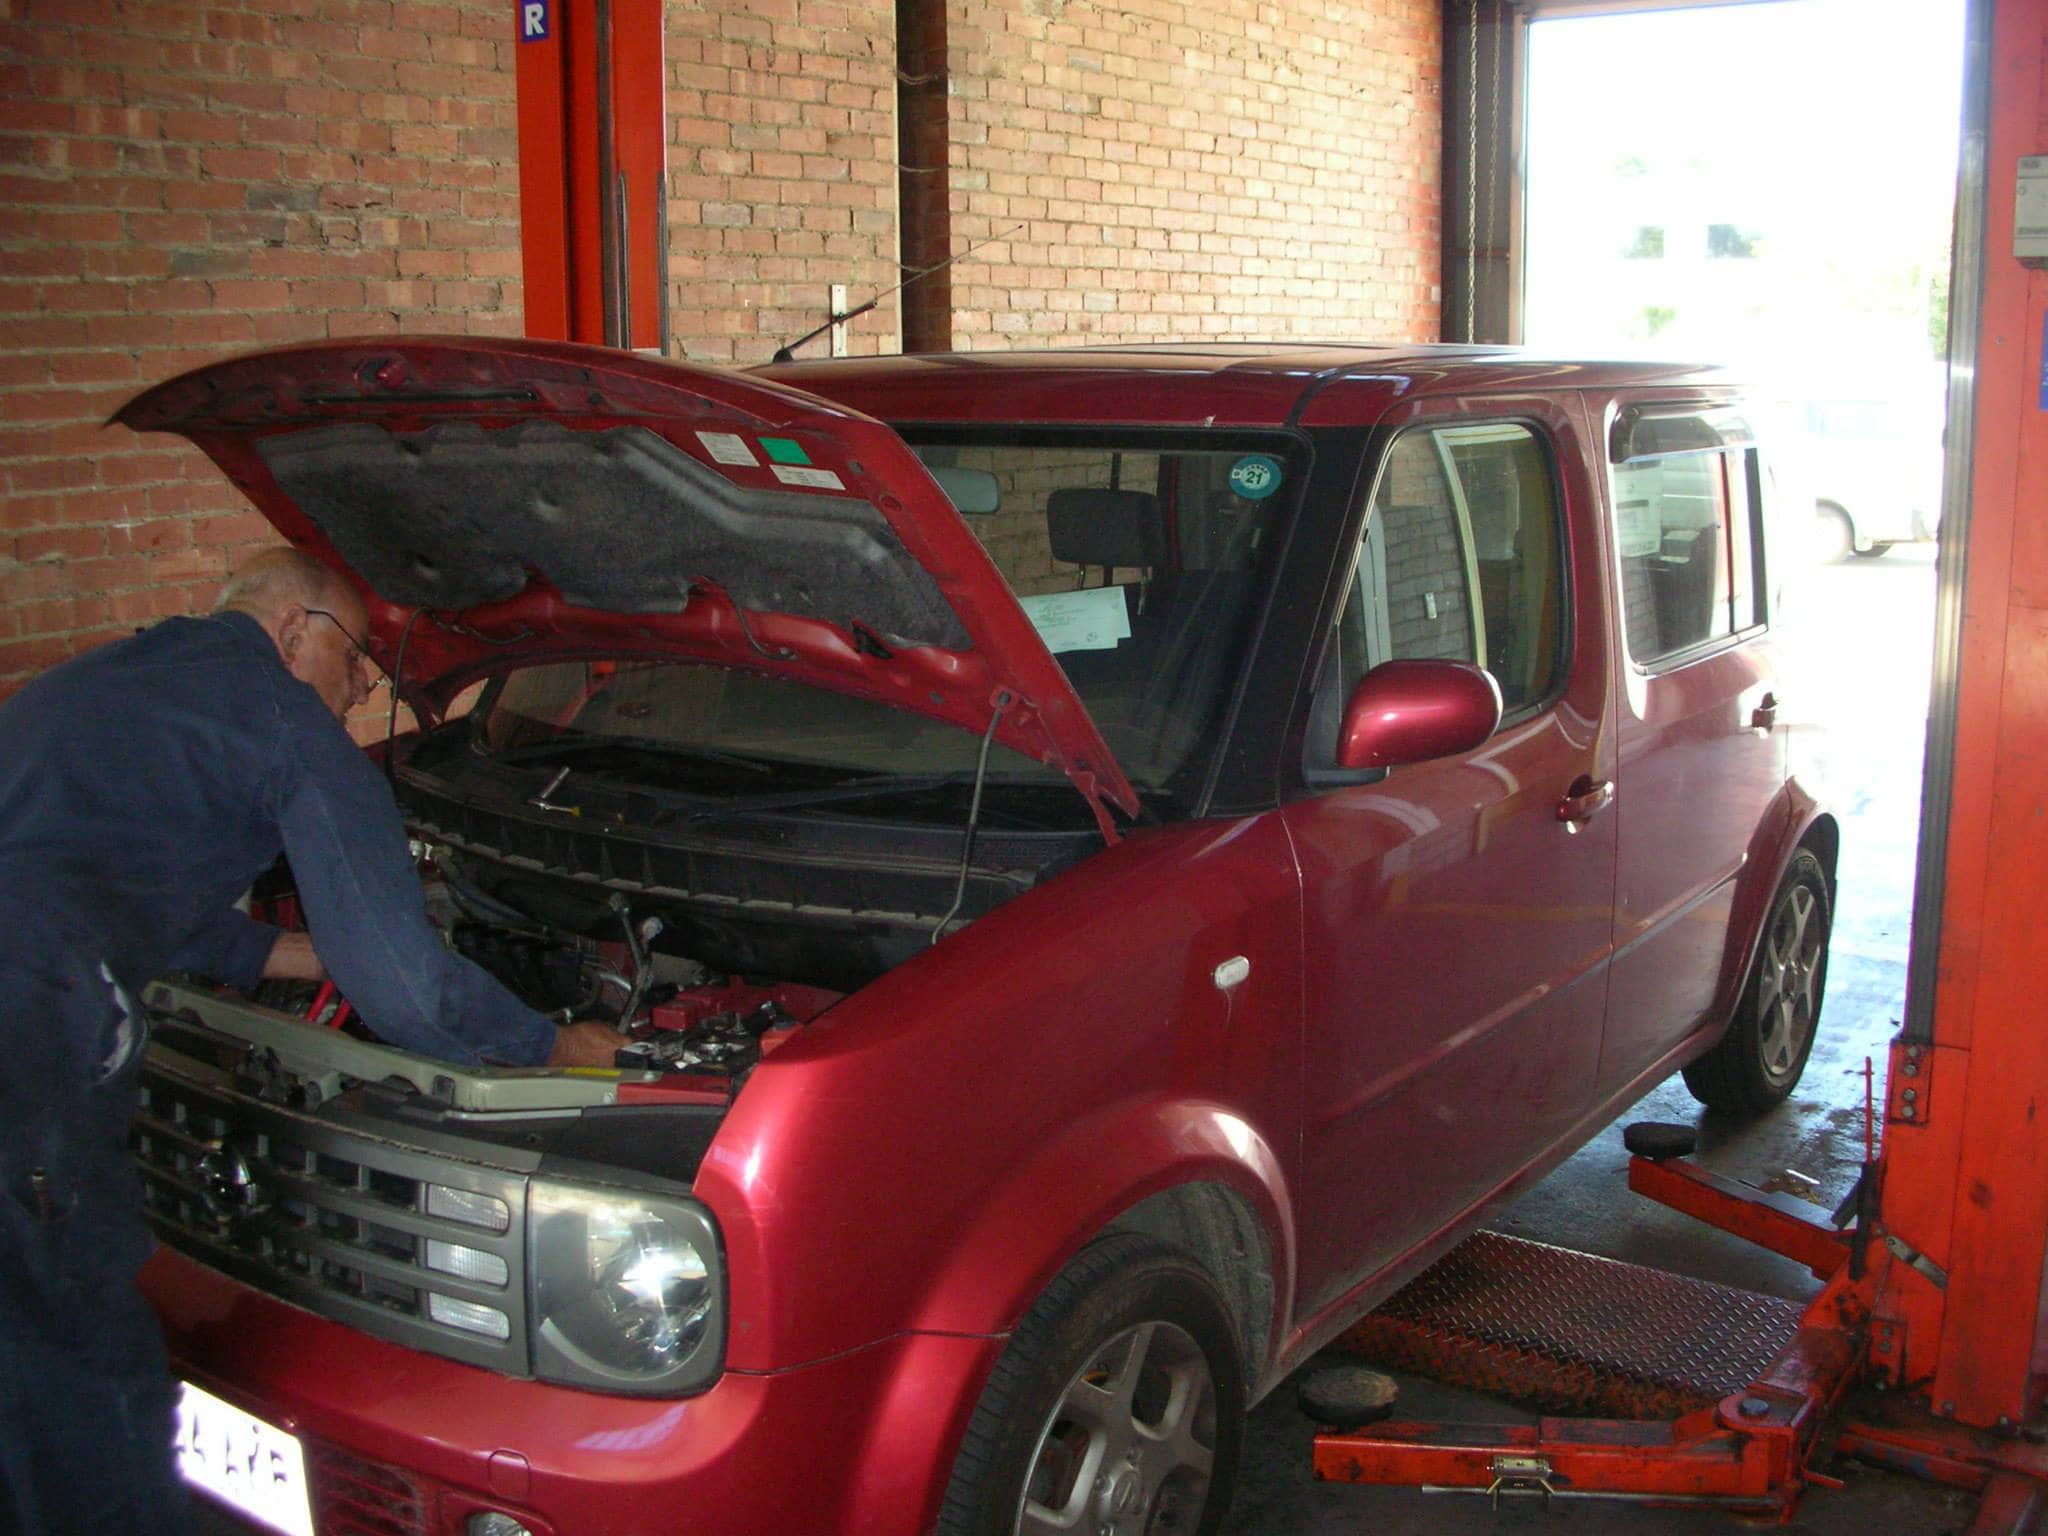 car repairs - Auto Servicing 101: Types of Services You Can Expect from Auto Mechanics